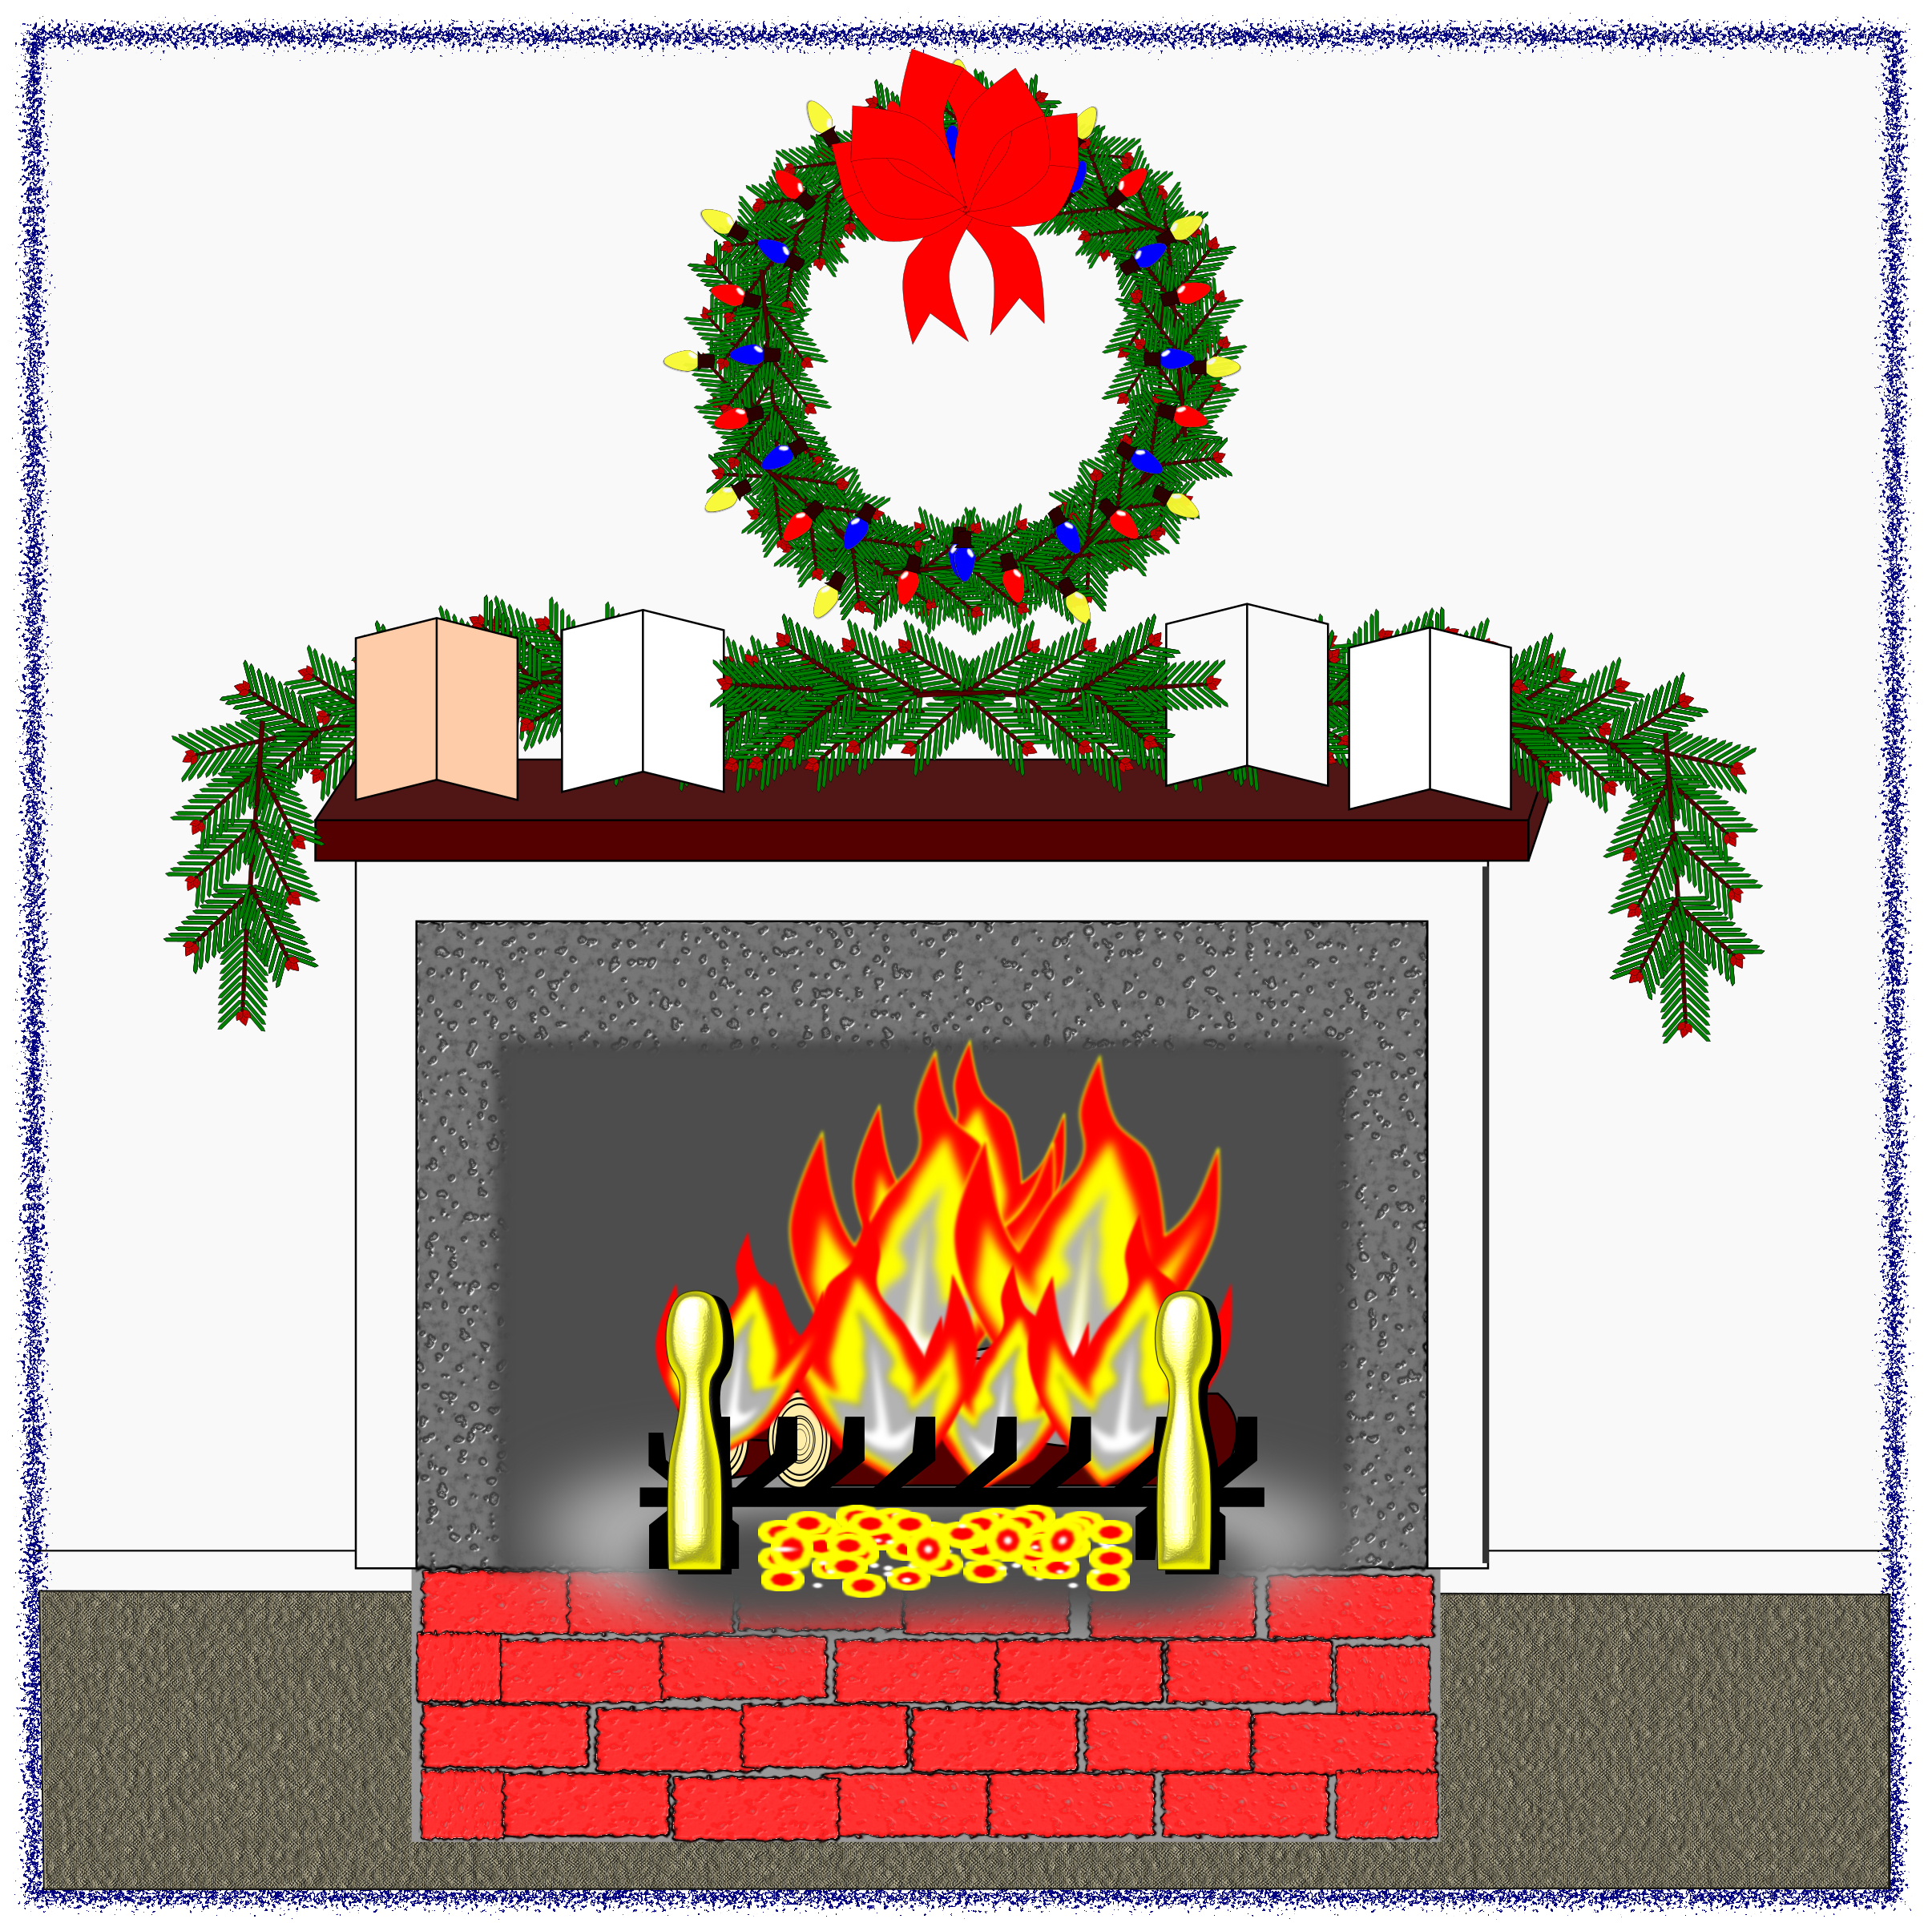 Christmas Hearth Fire by algotruneman